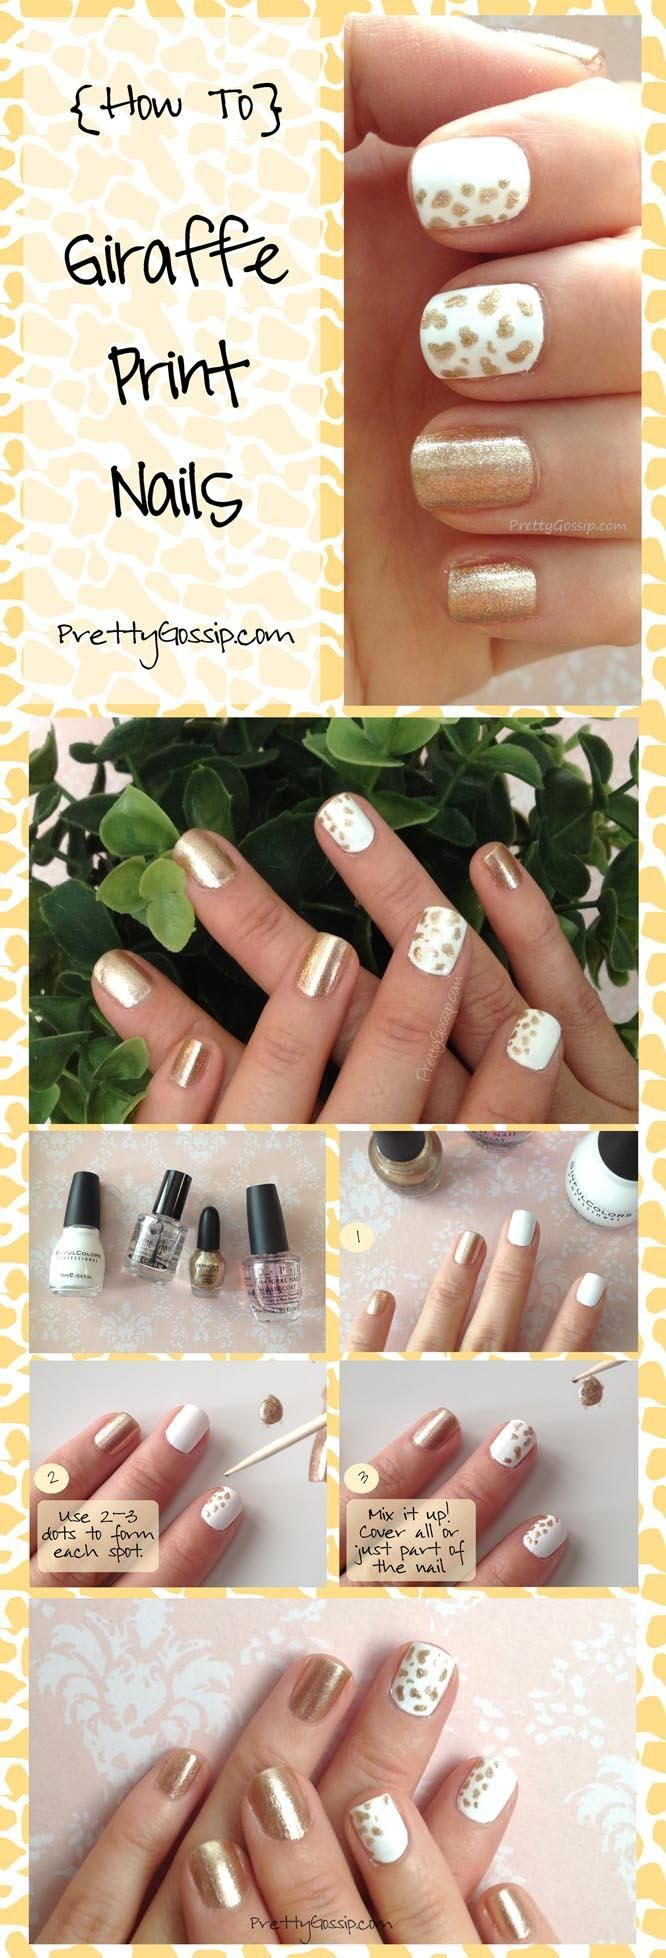 30 best nails images on Pinterest | Giraffe nails, Art ideas and Art ...